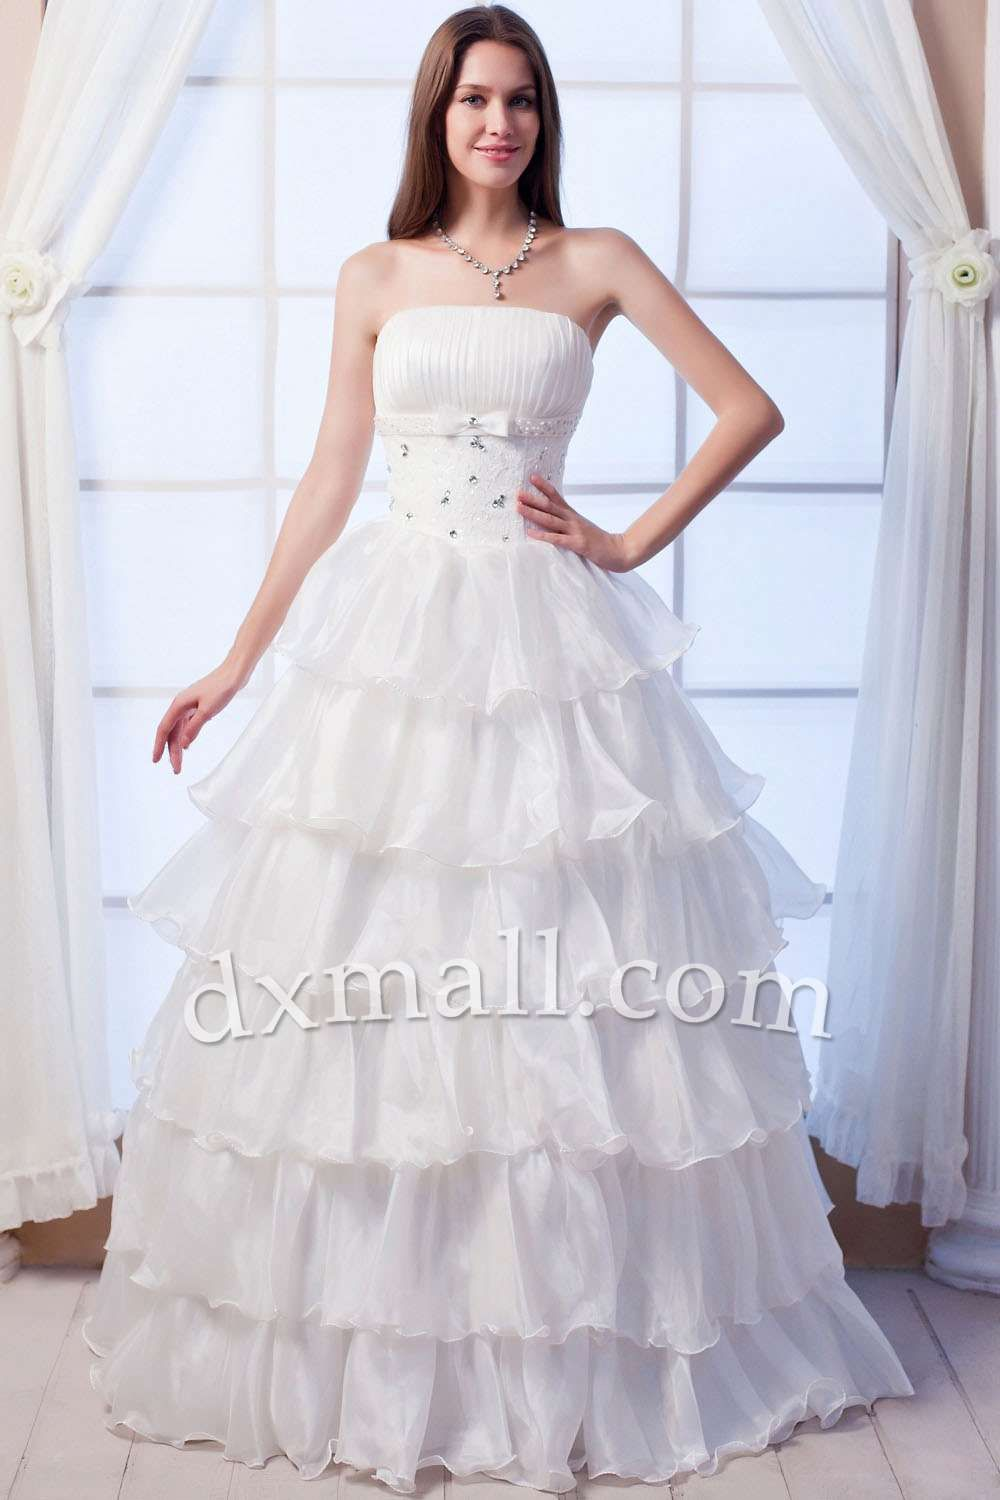 Wedding dress images  Pick Up Wedding Dresses Strapless Floor Length Satin Organza White